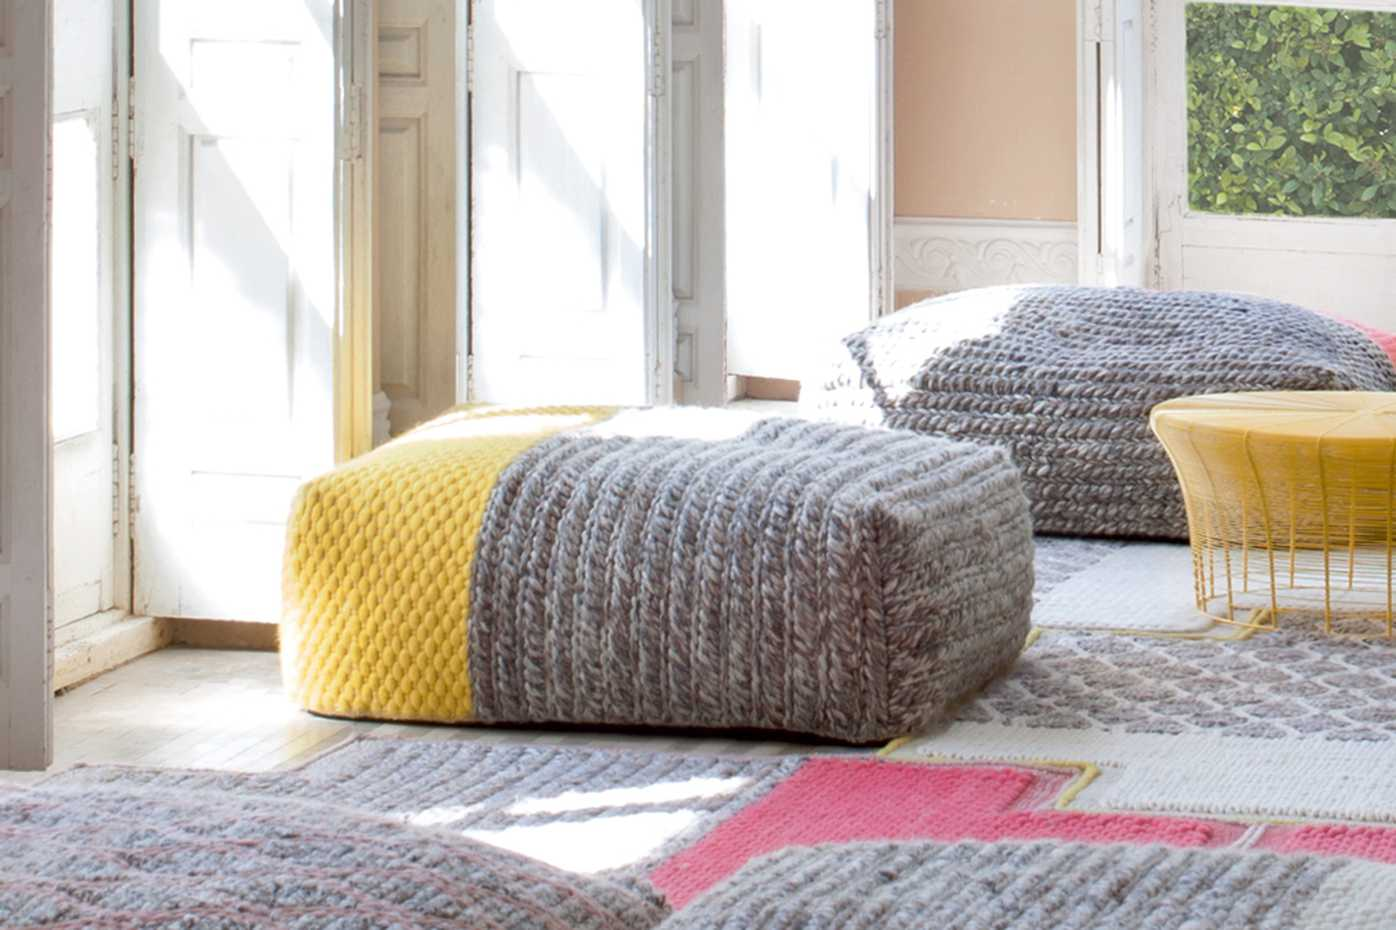 Mangas Space Poufs by Gan Rugs product image 1